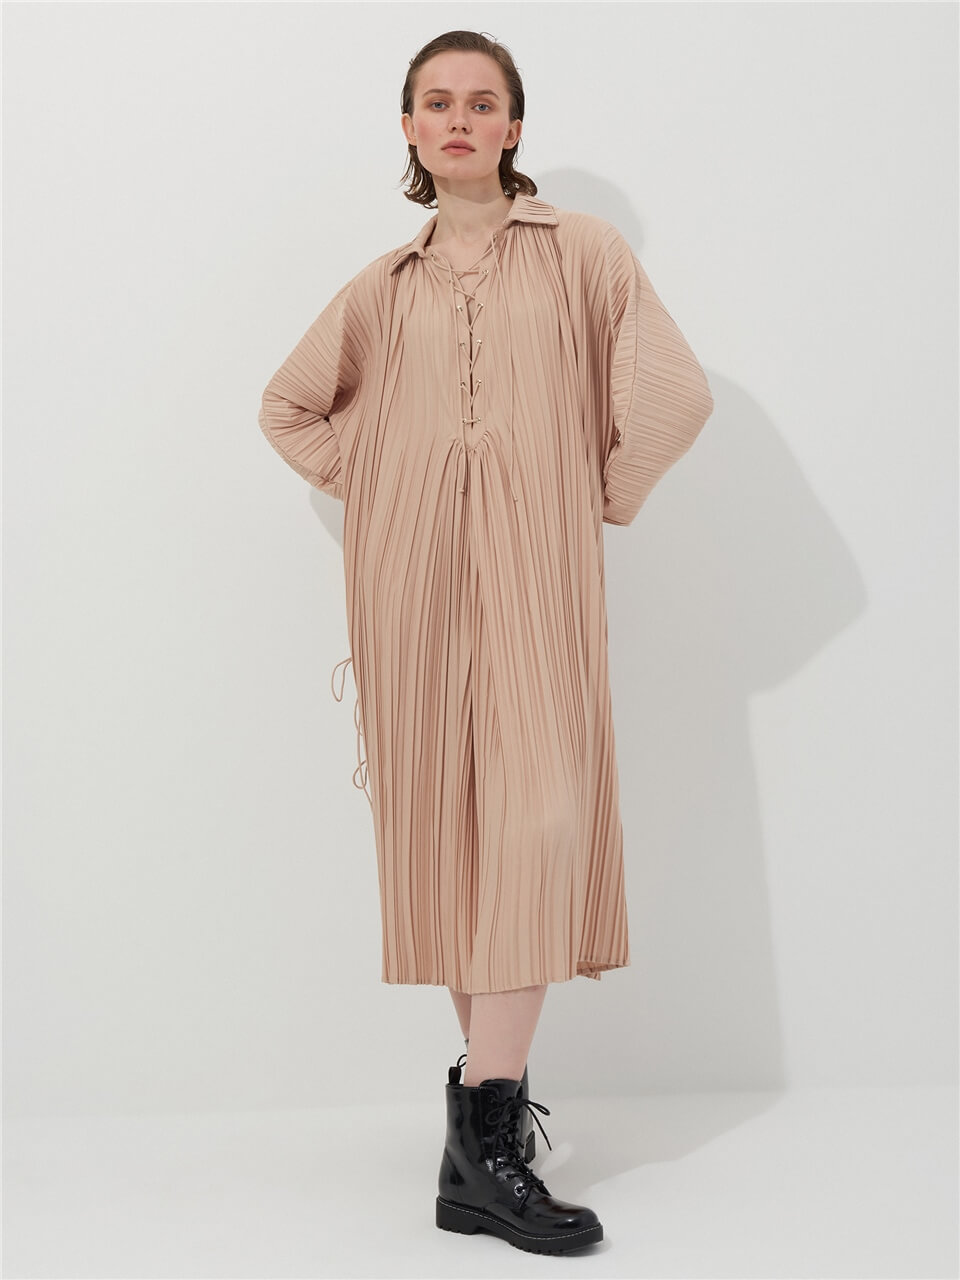 Pleated Powder Color Dress